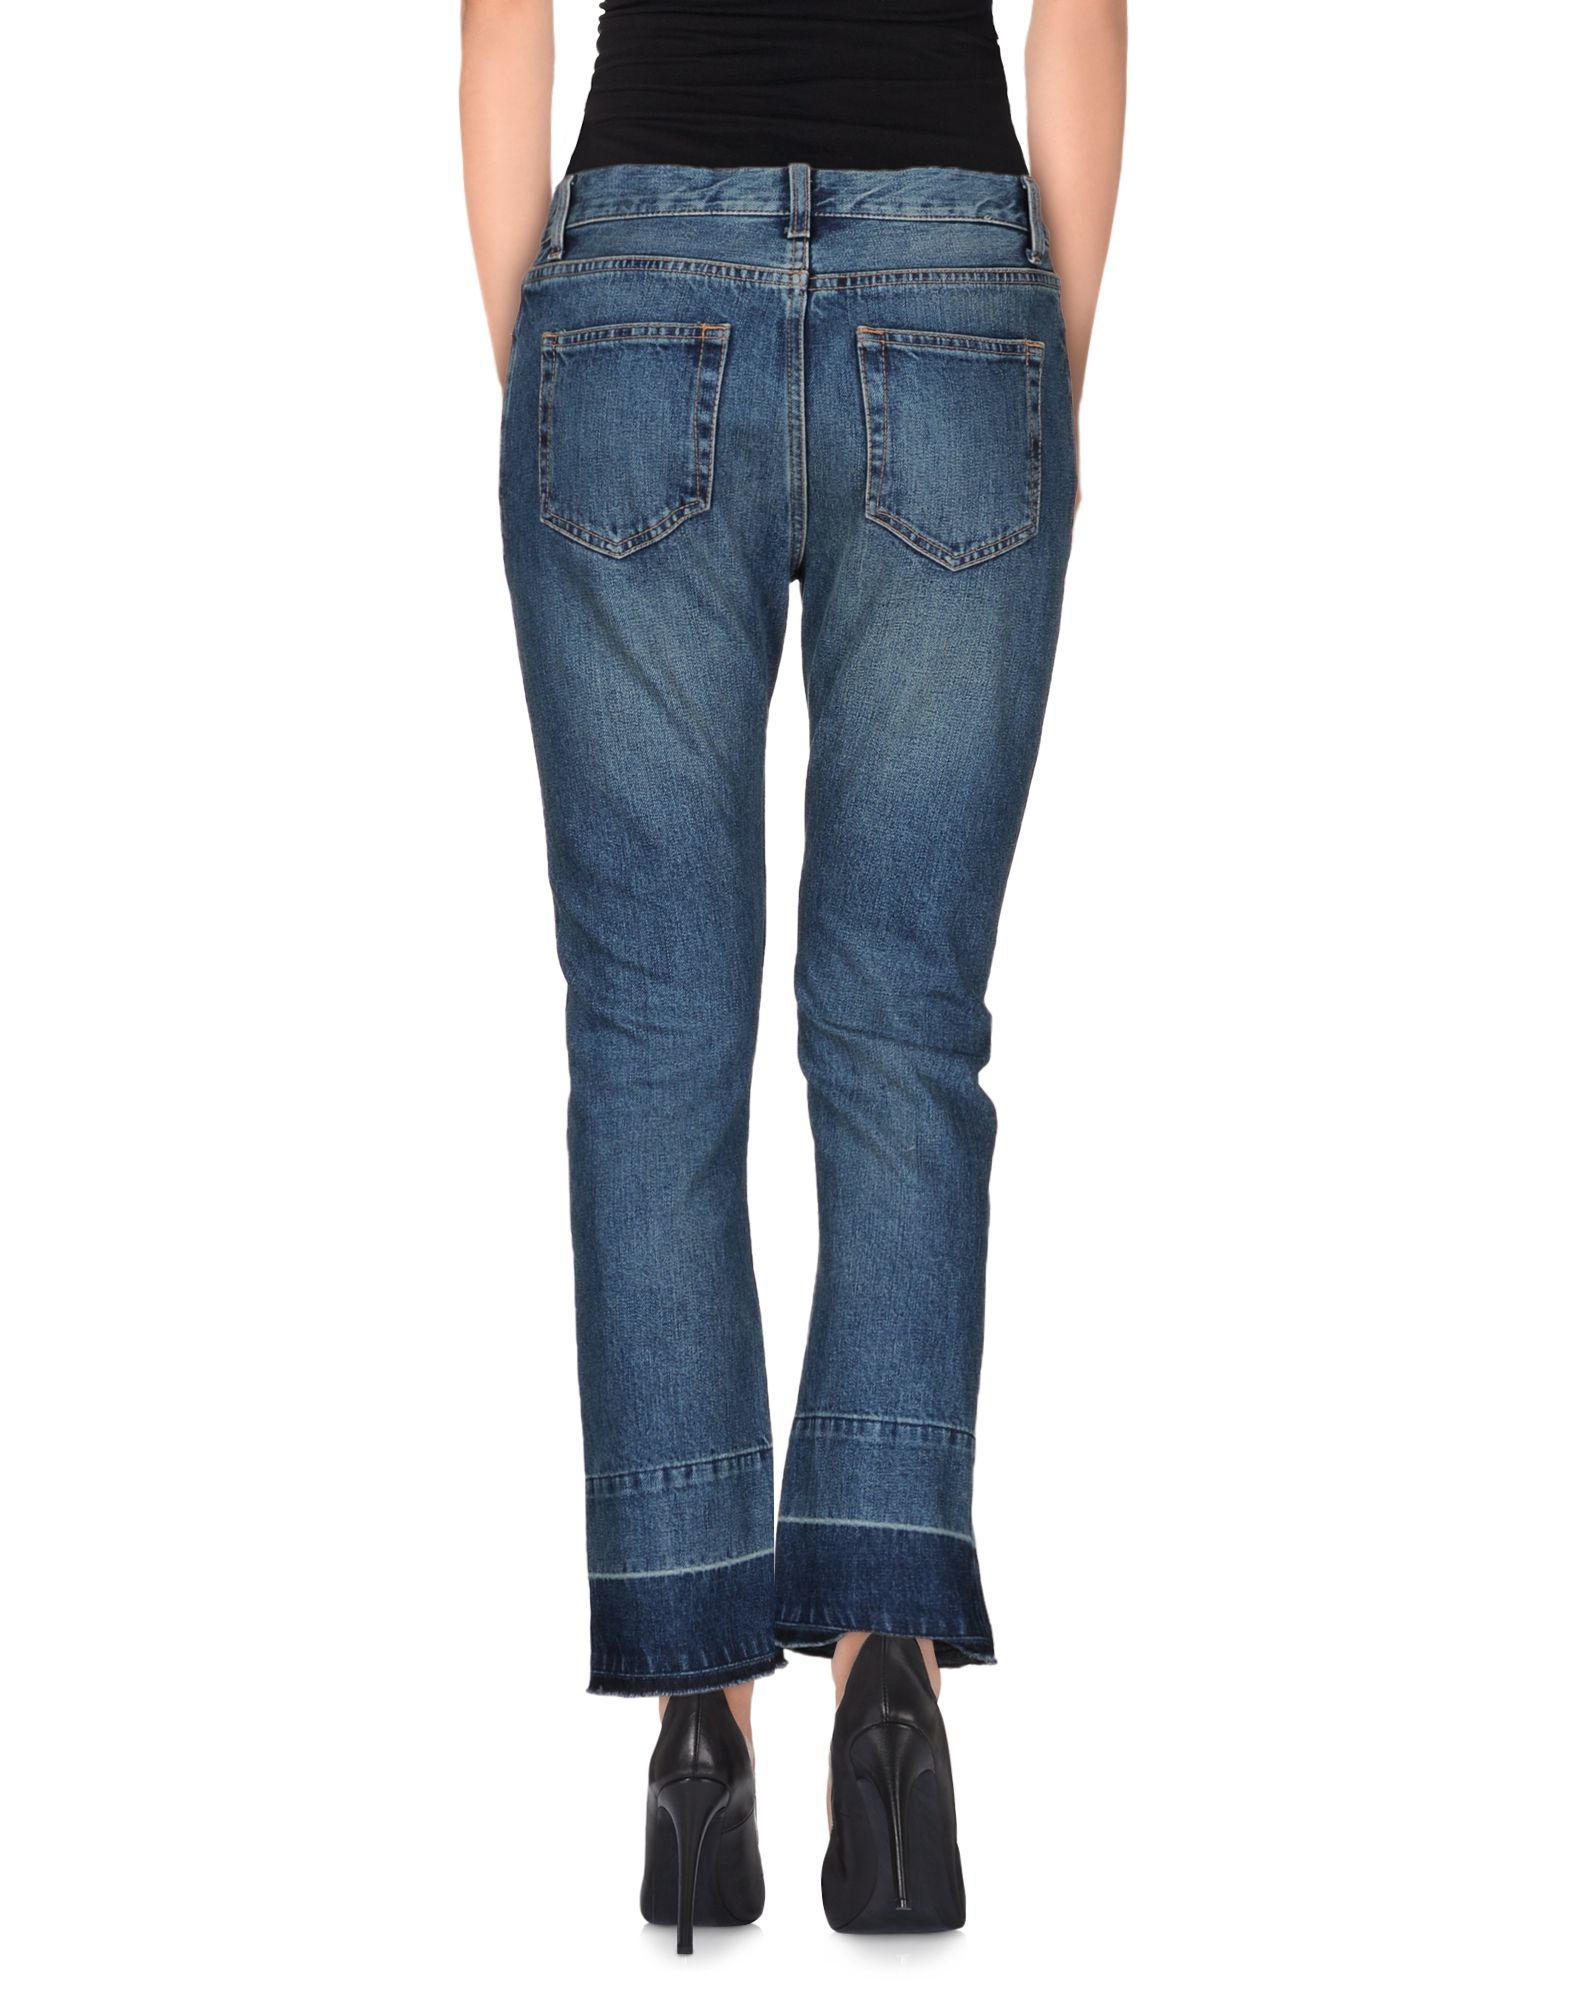 DENIM - Denim trousers Erika Cavallini Semi Couture With Mastercard Fast Express tCJjZOPH